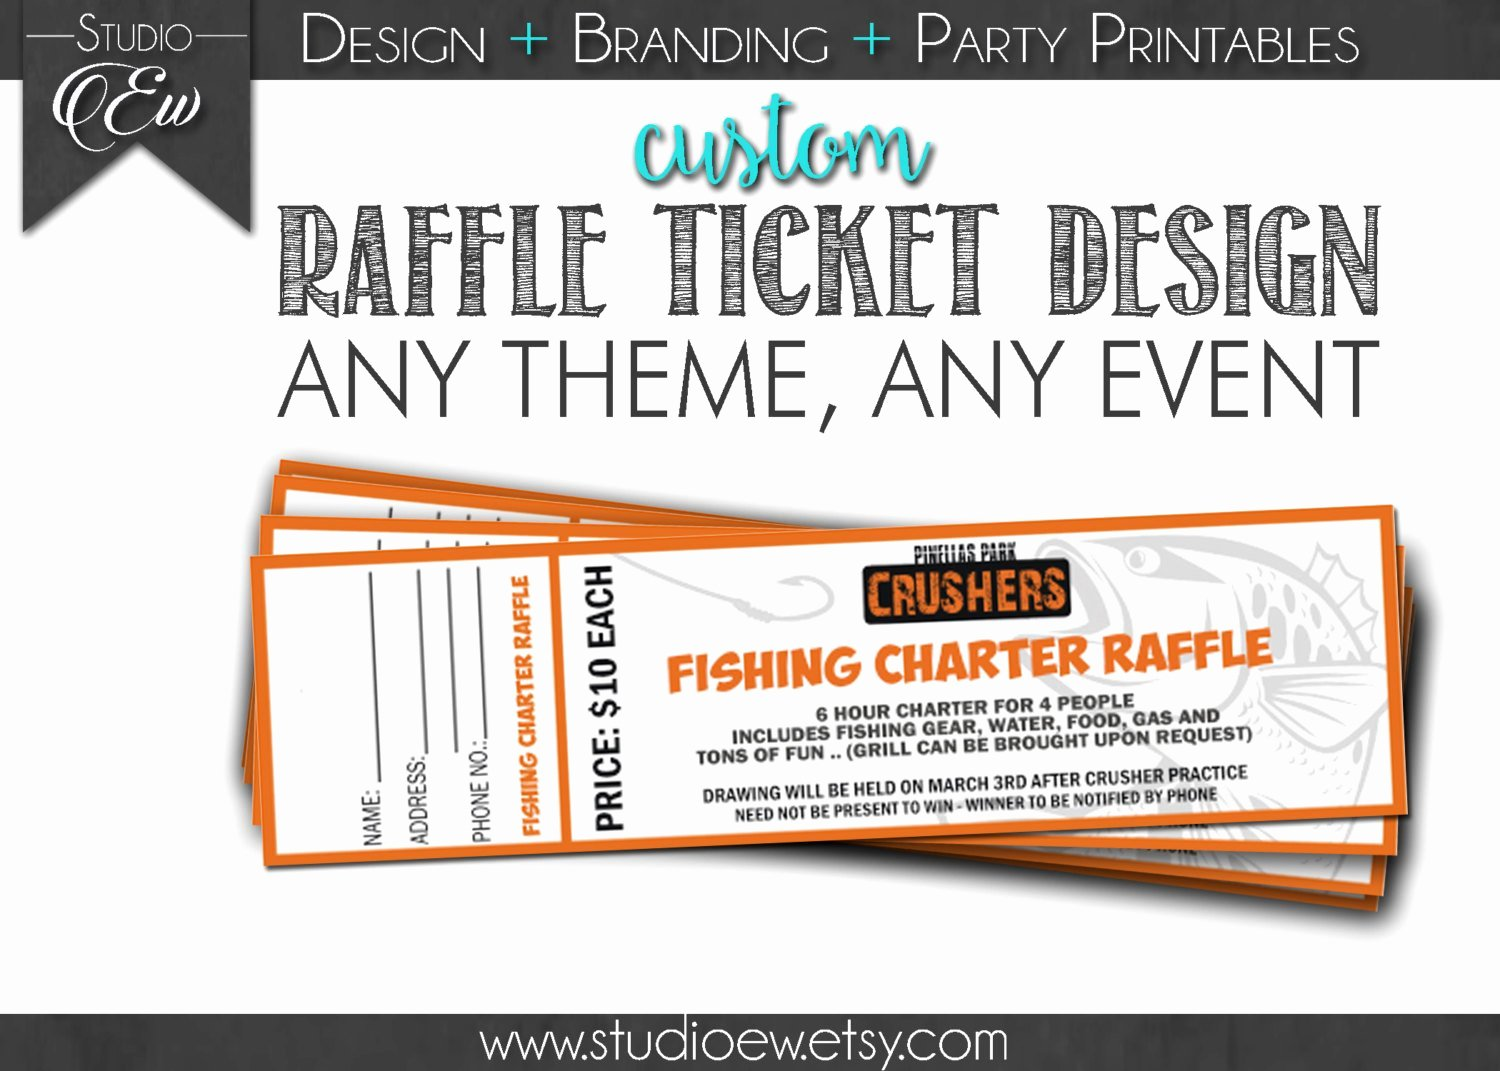 Fundraising Ticket Template Free Luxury Custom Raffle Ticket Design Any event Any theme Fundraiser